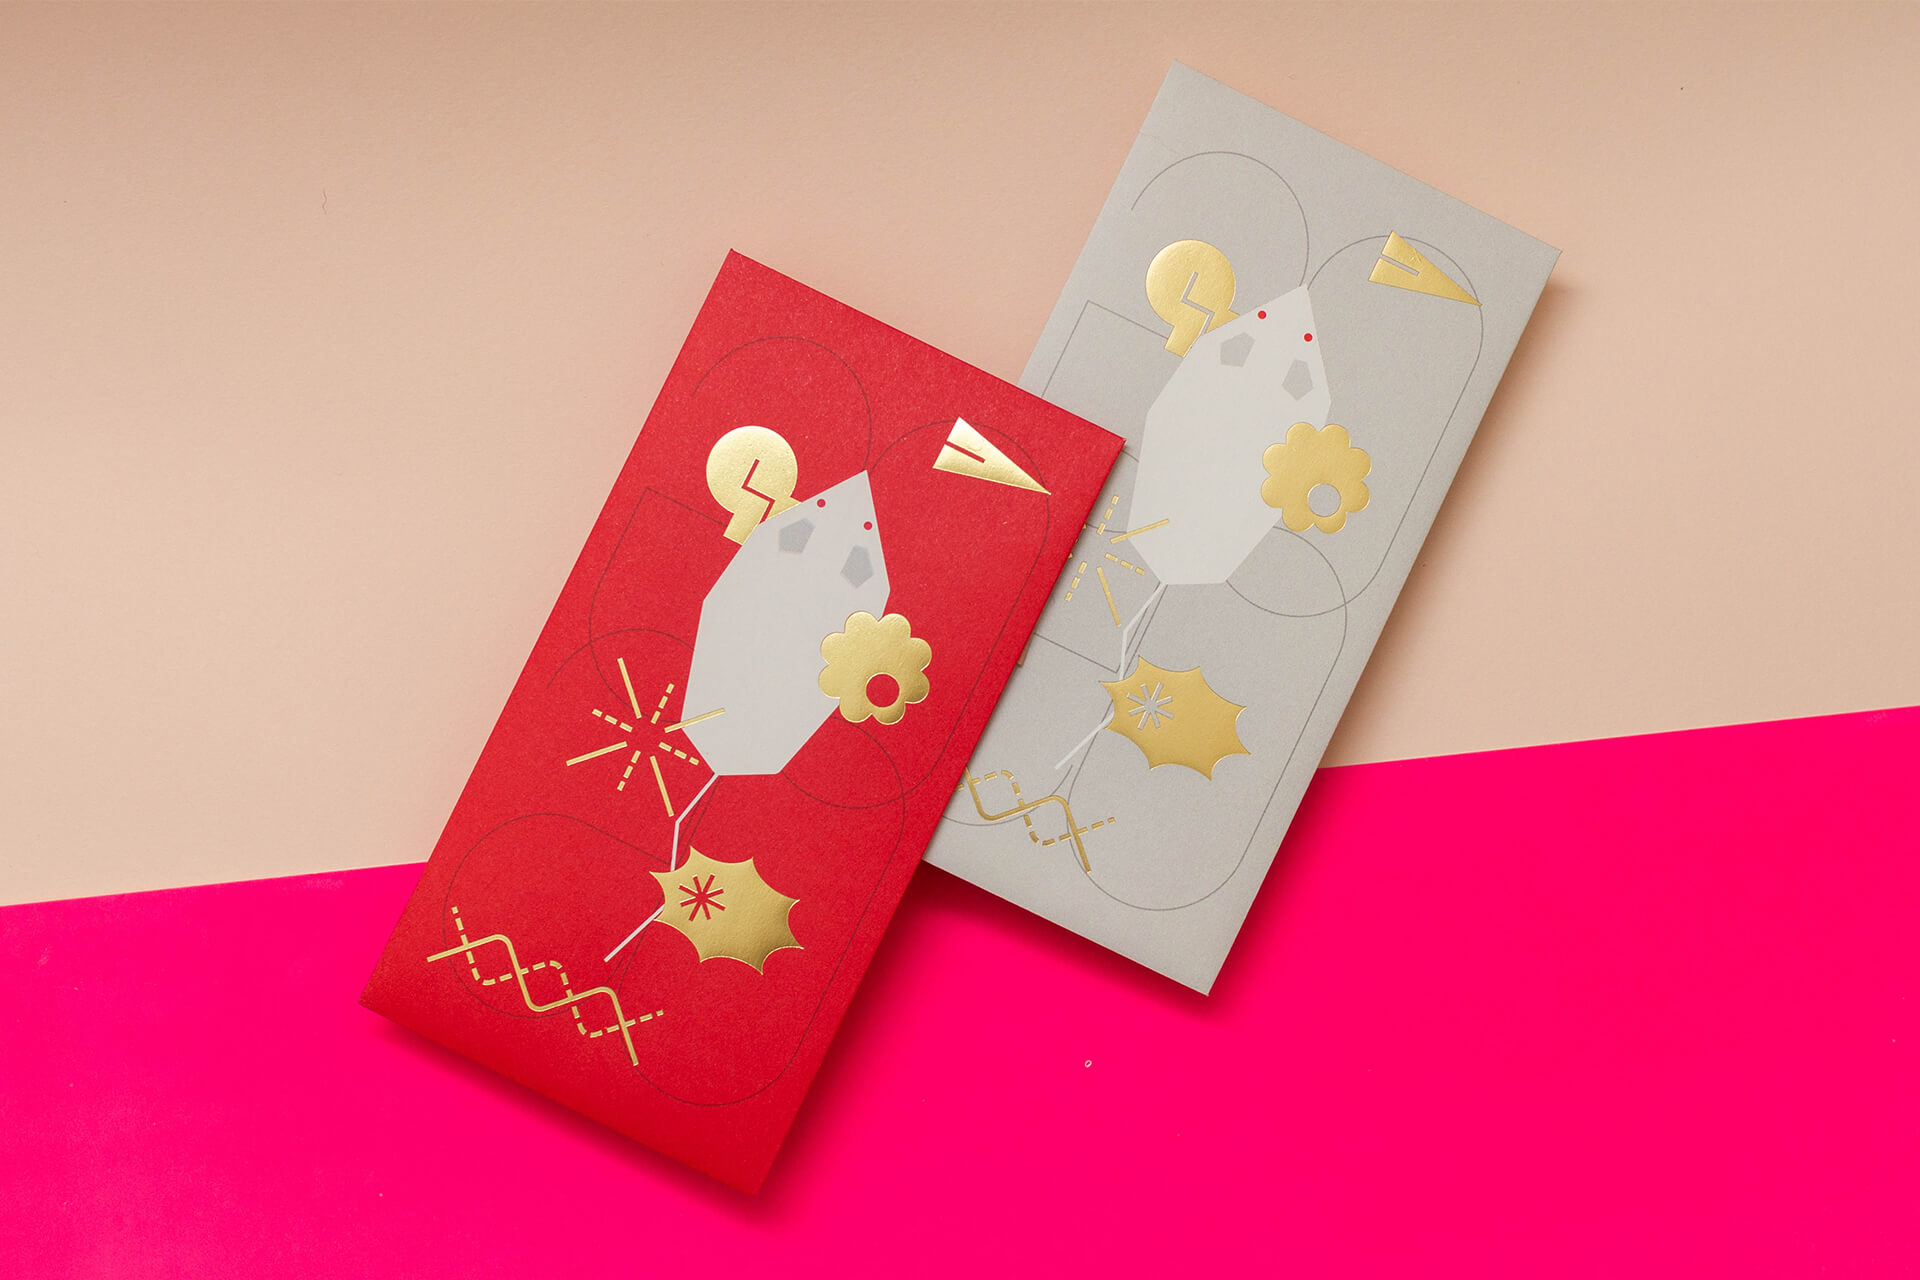 CNY 2020 Red Packet Design